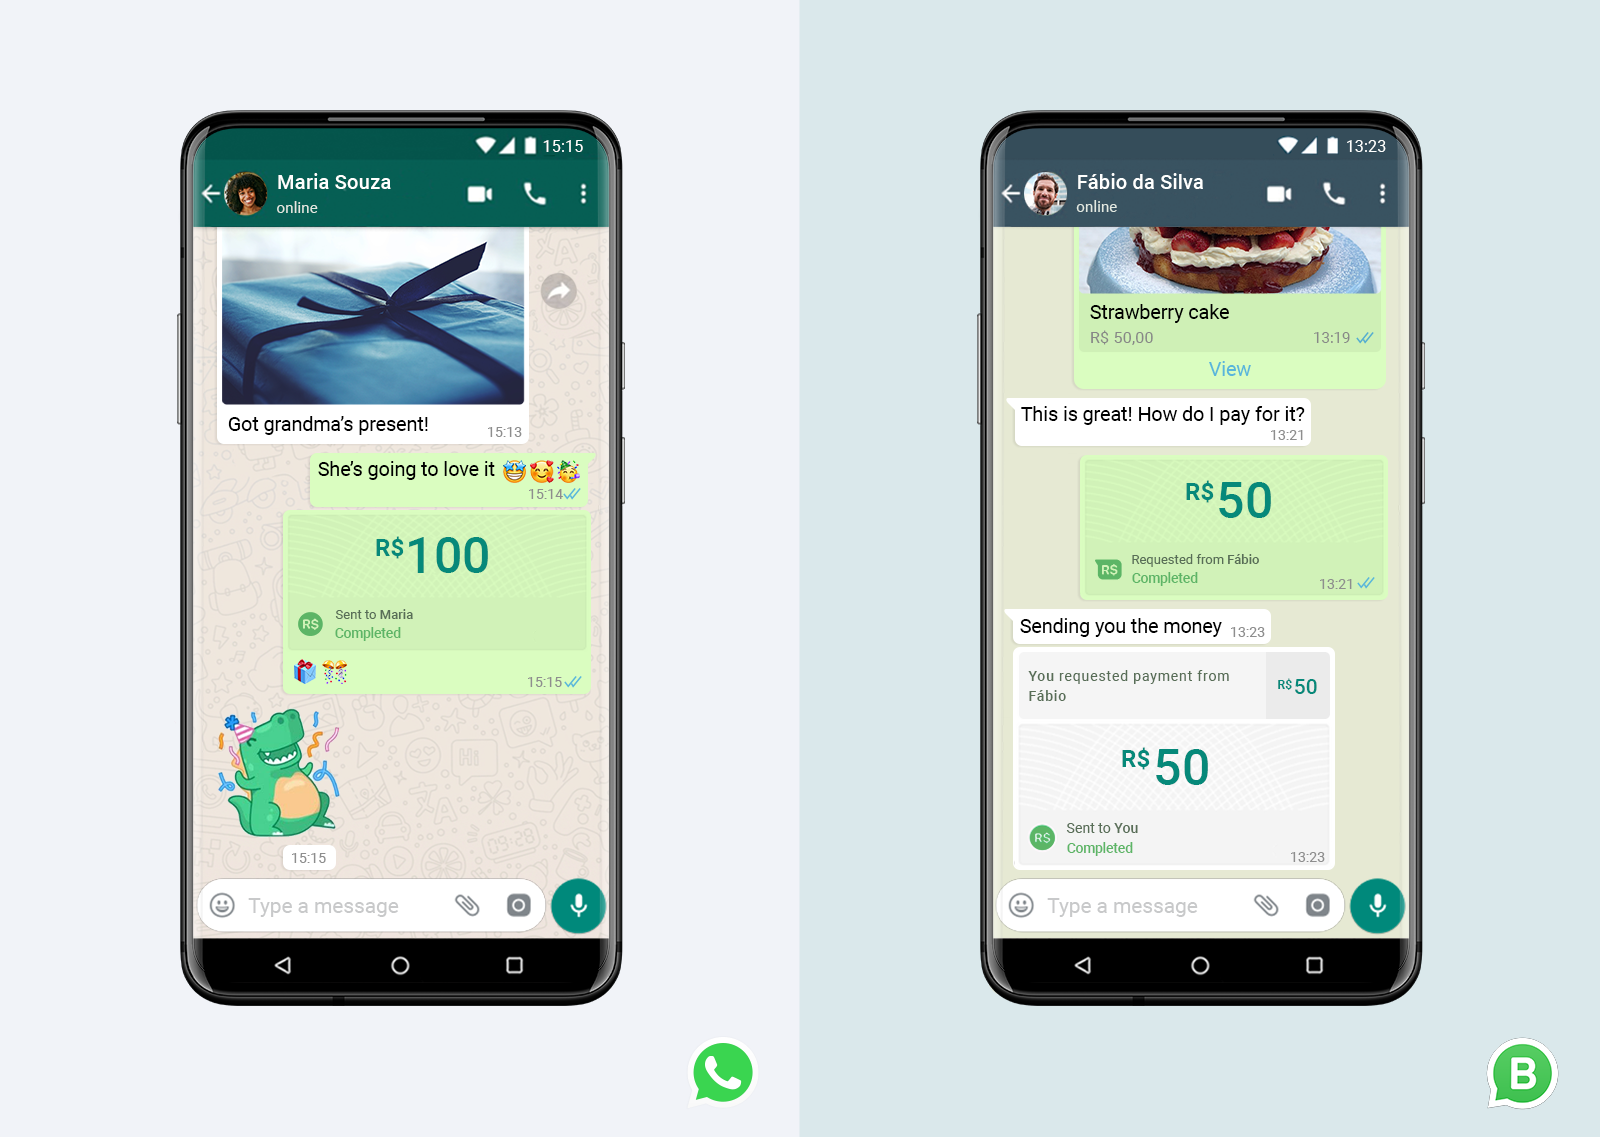 WhatsApp Users in Brazil Can now Send Money to Friends and Family 💸💸